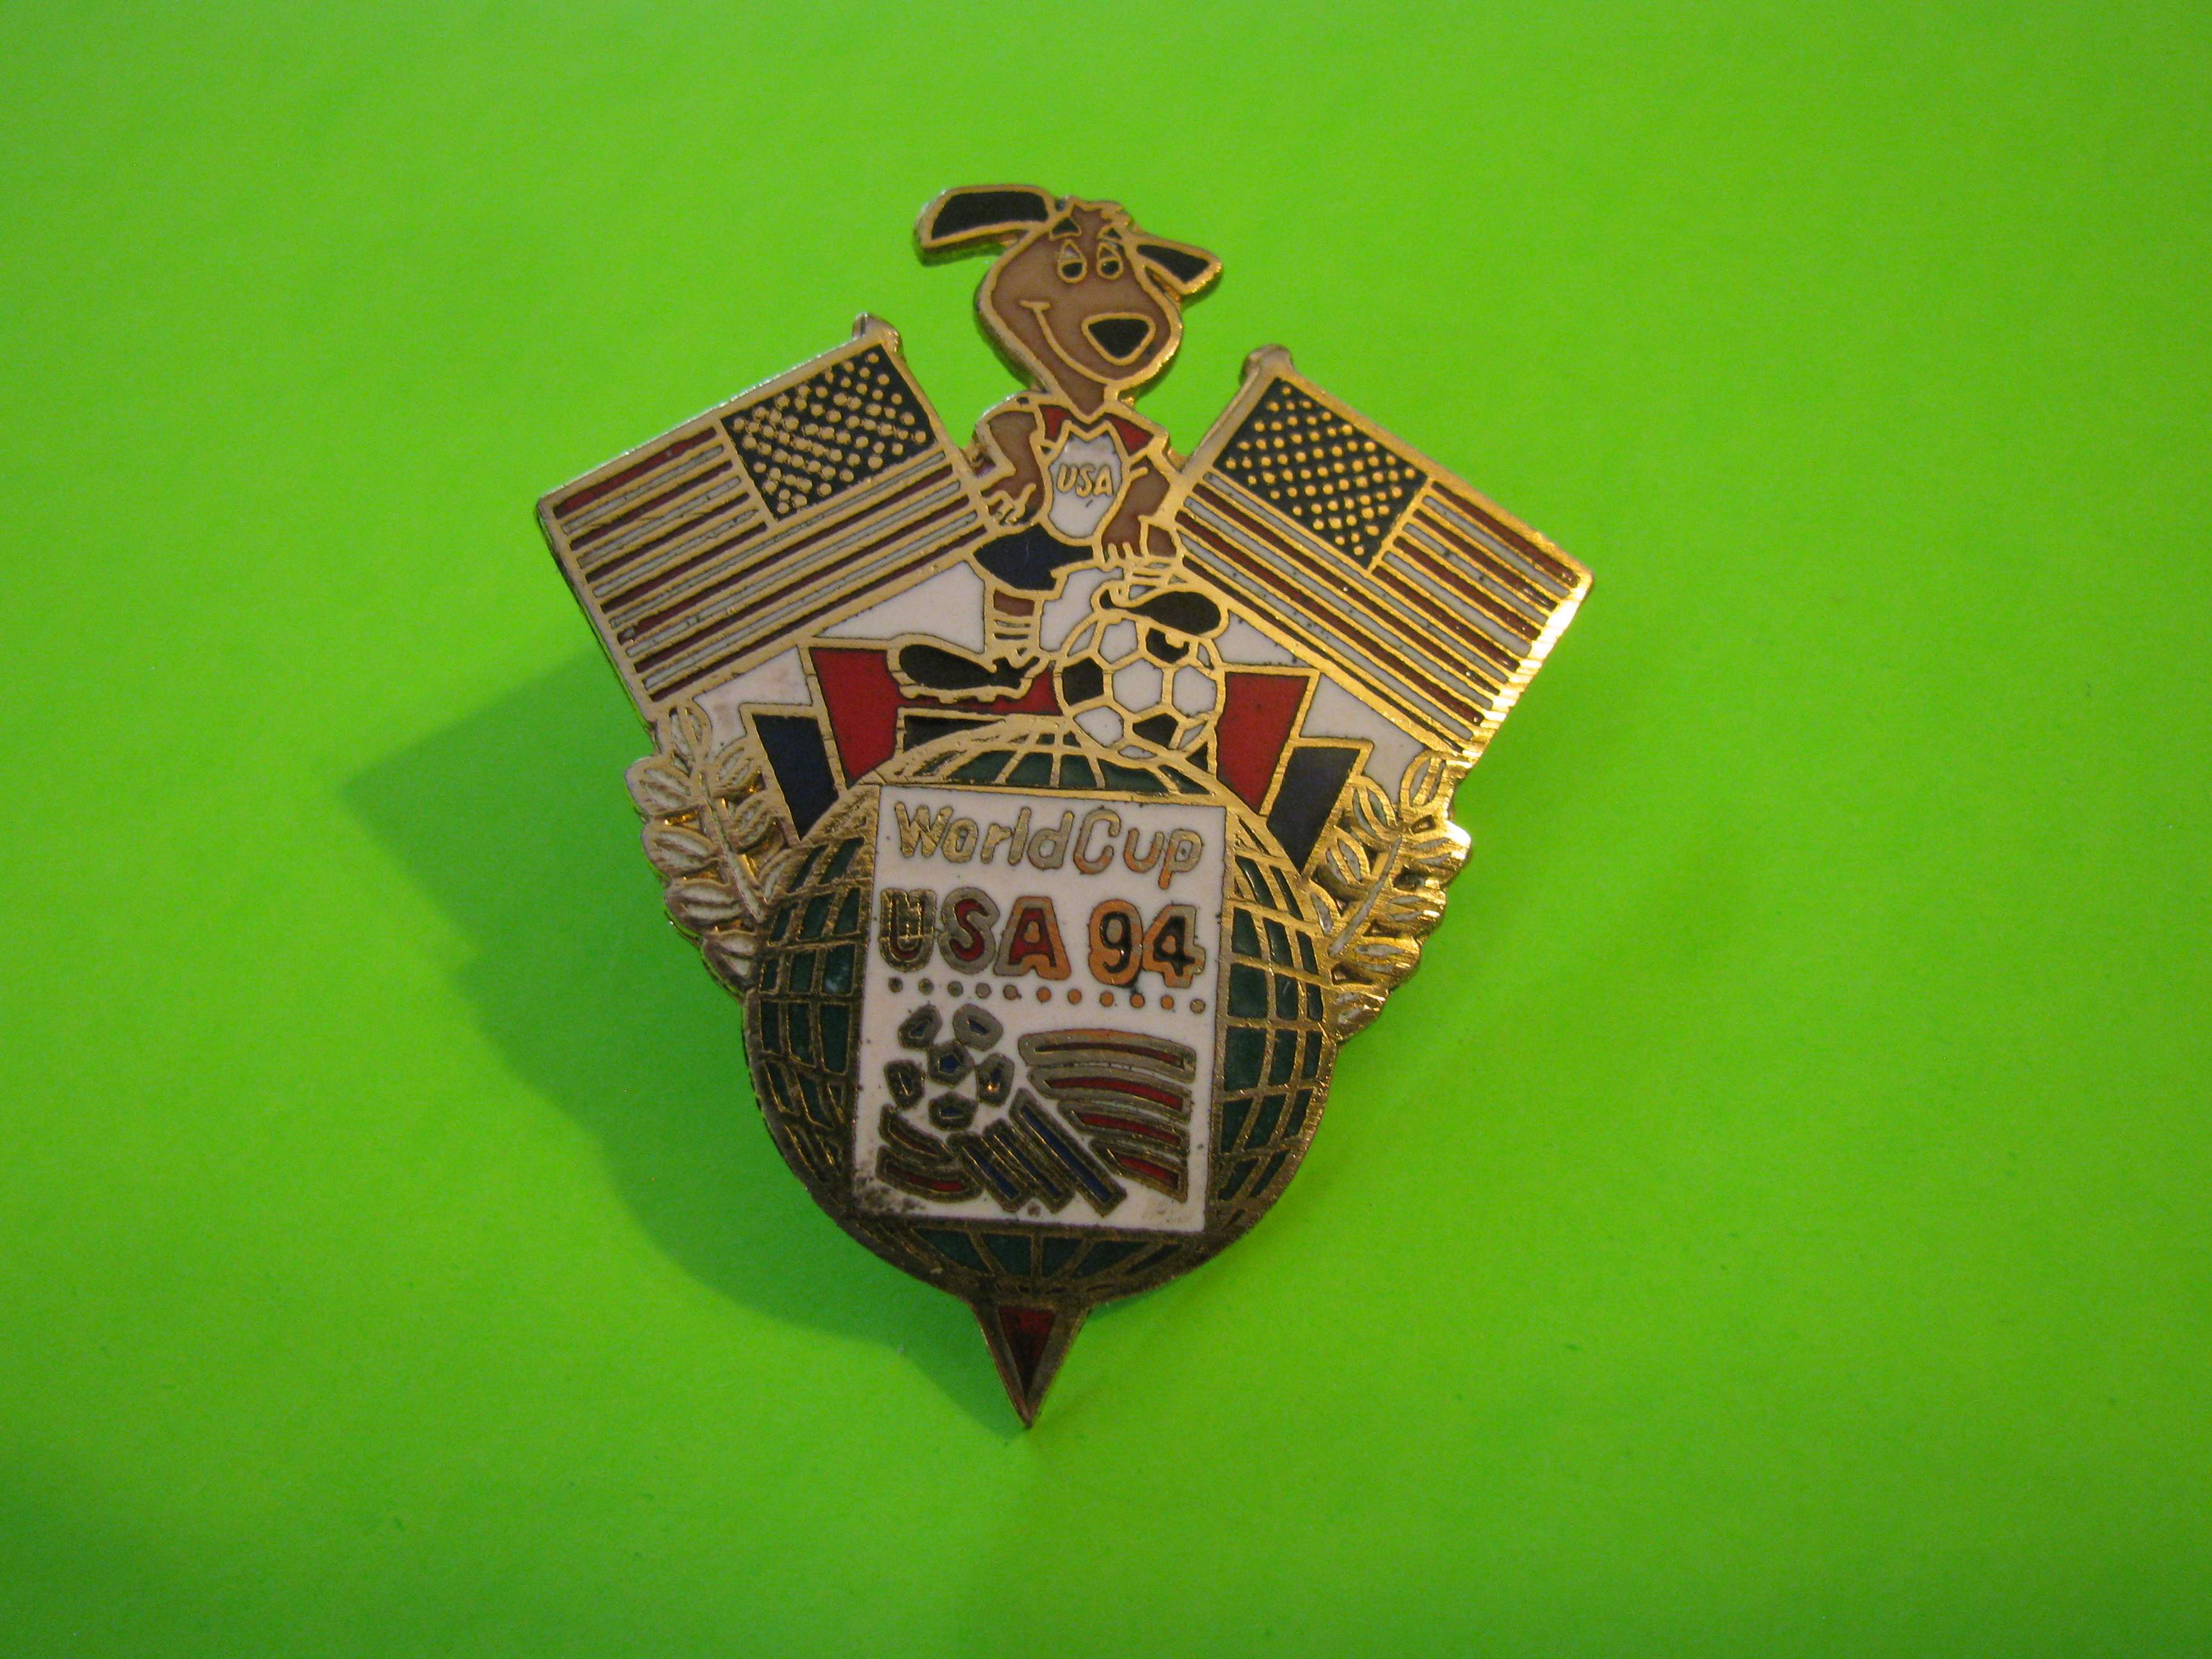 1994 World Cup USA Large Team USA Soccer Pin with Butterfly Clutch